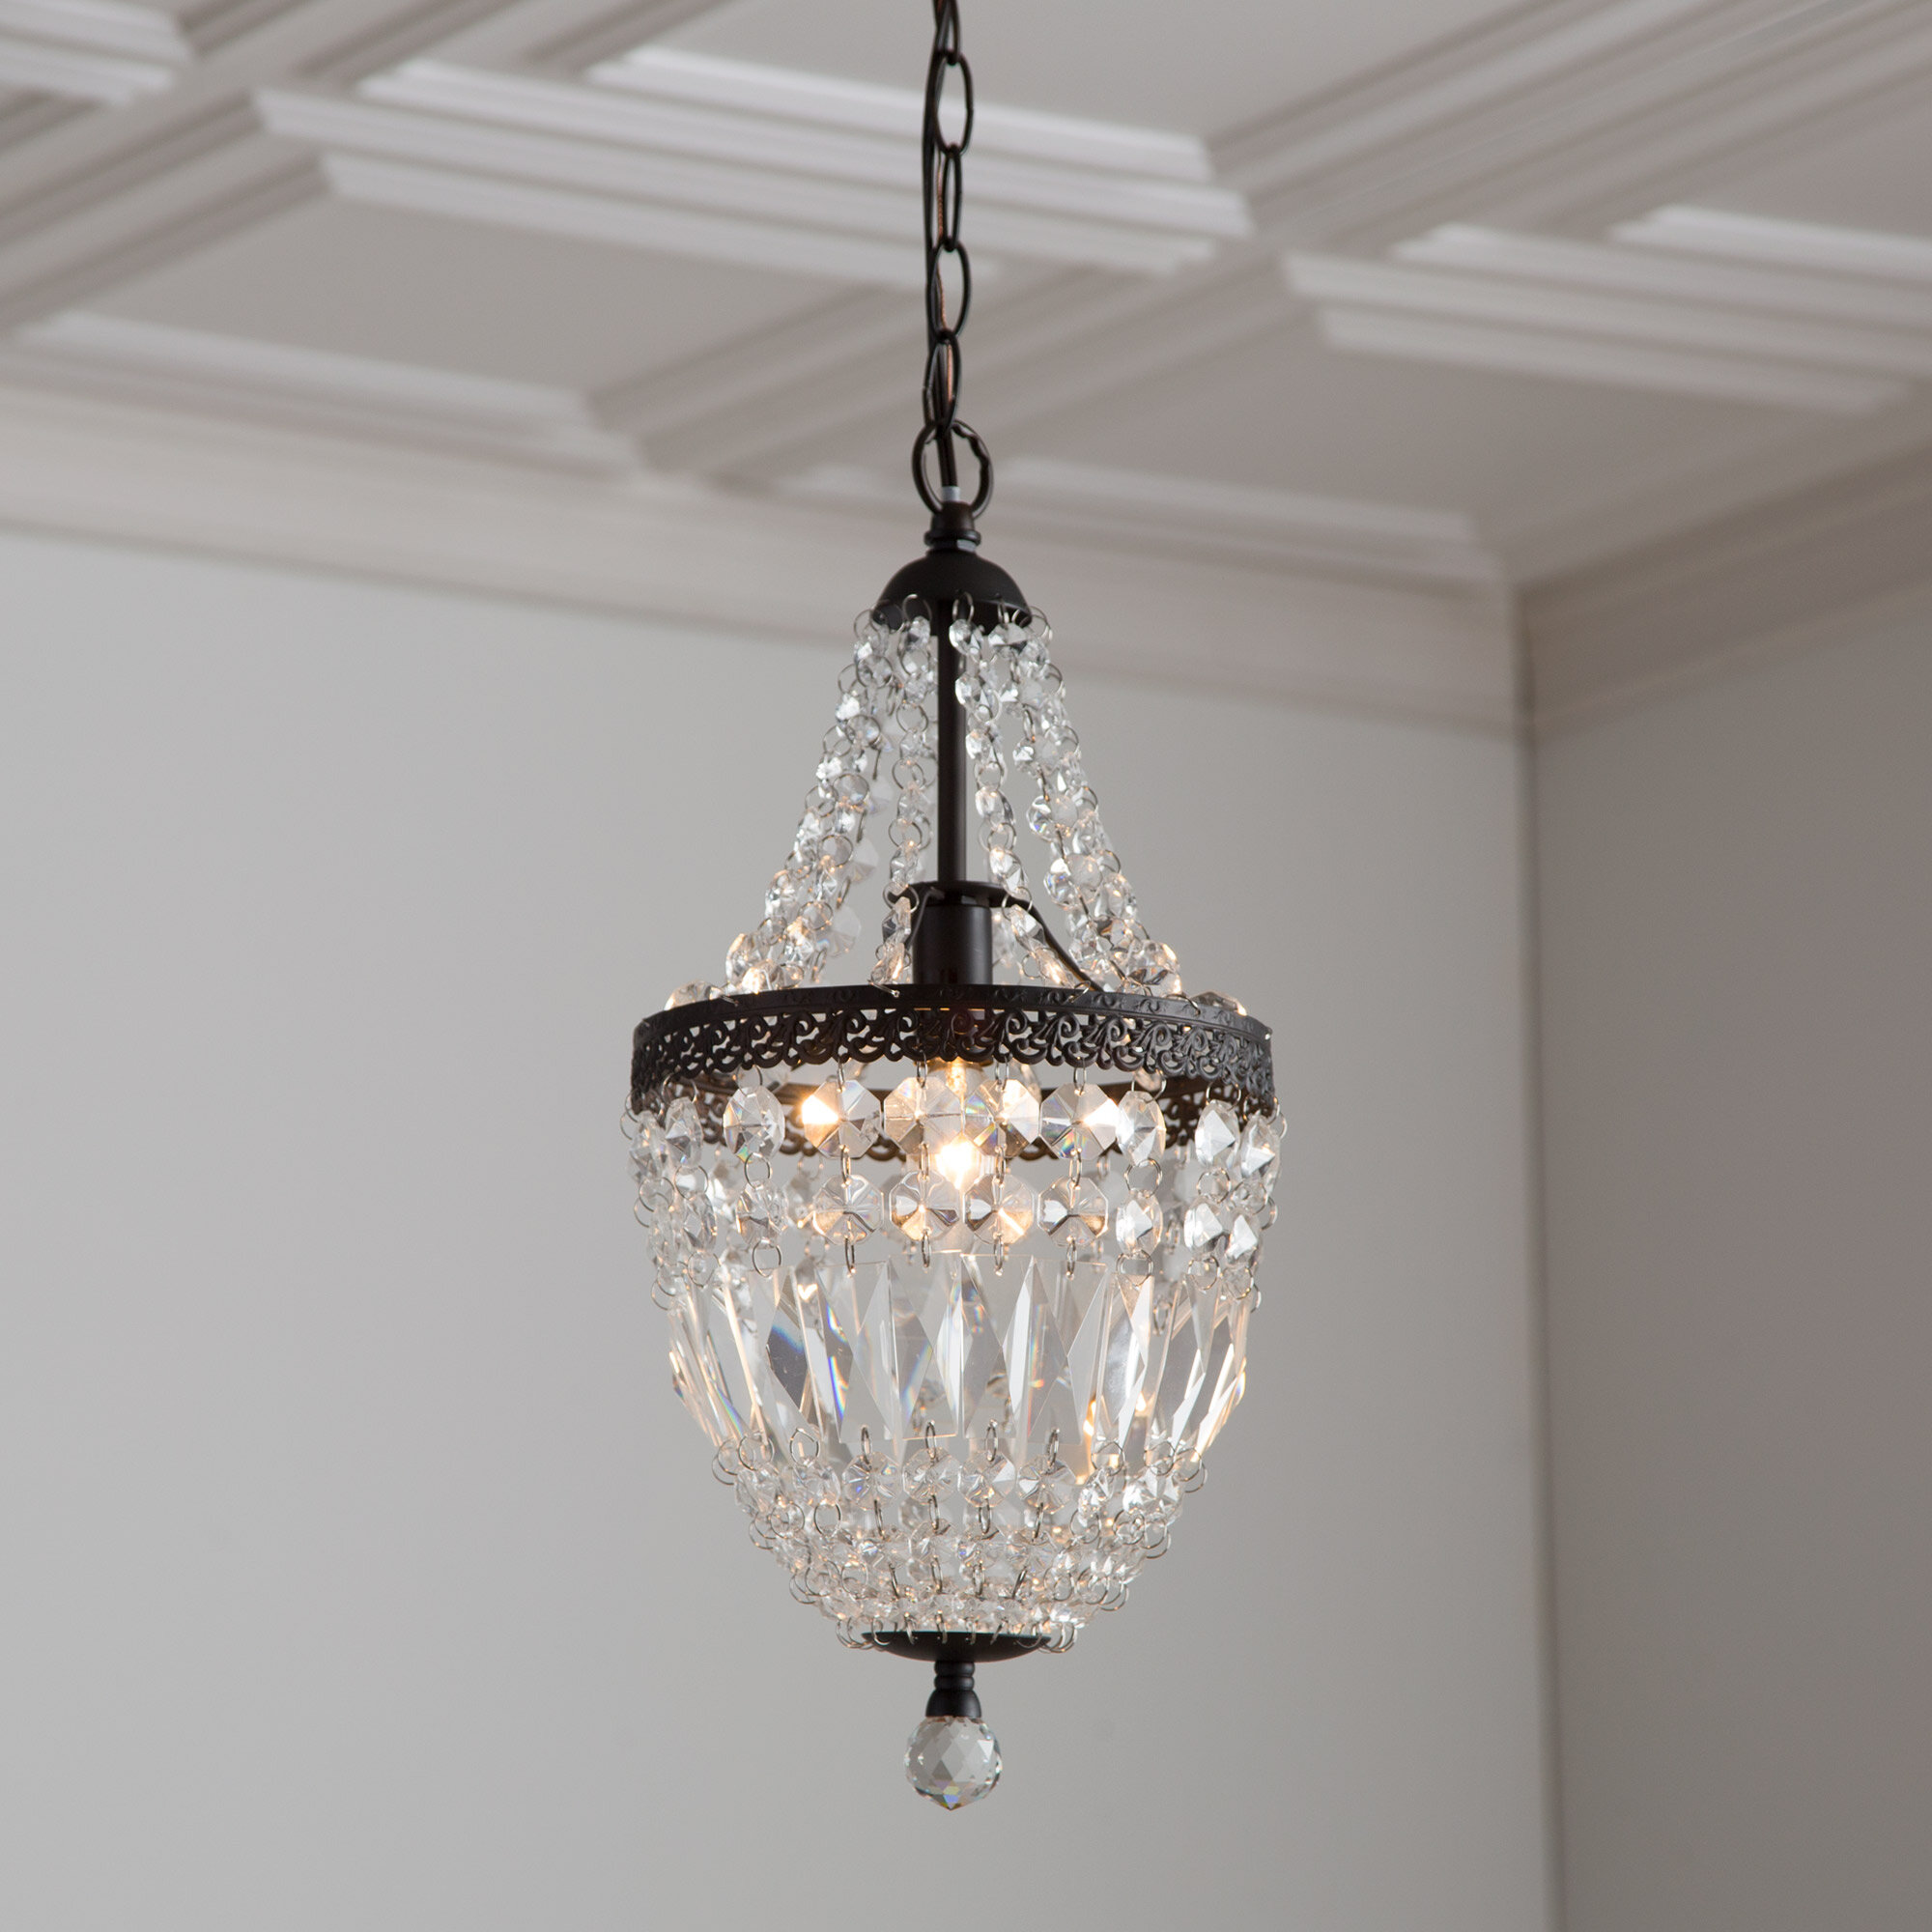 Spokane 1 light crystal pendant reviews birch lane